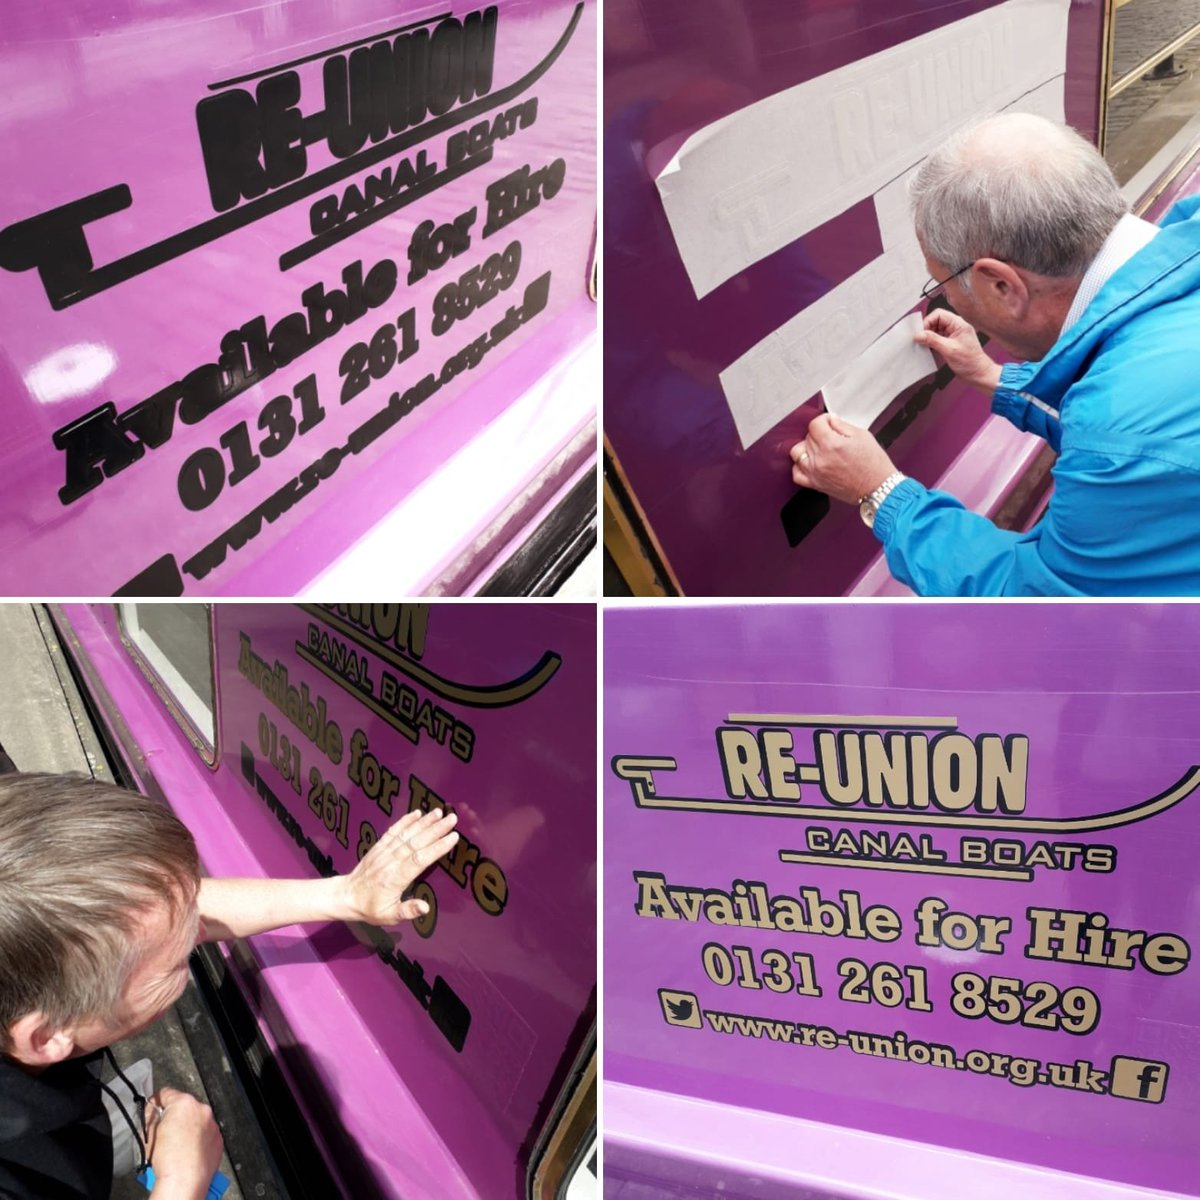 Re-Union Canal Boats on Twitter: